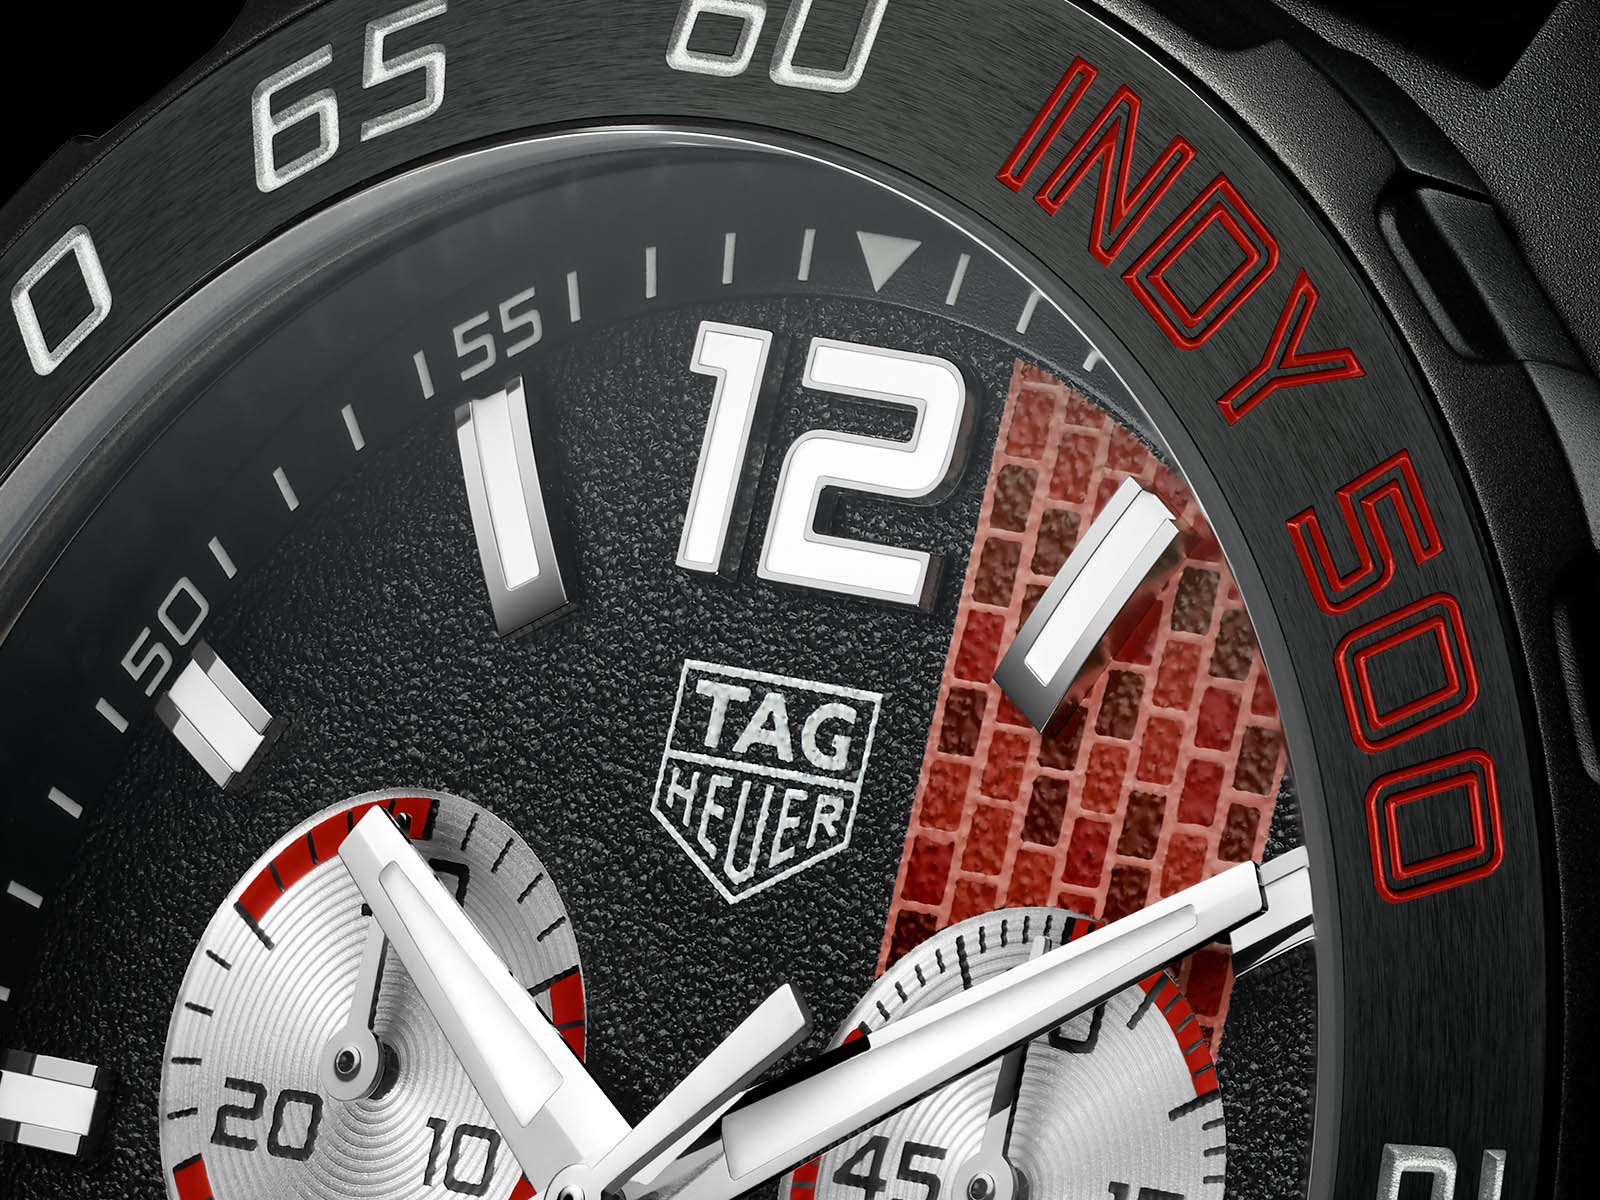 caz101ad-ft8024-tag-heuer-formula-1-indy-500-2020-special-edition-5.jpg